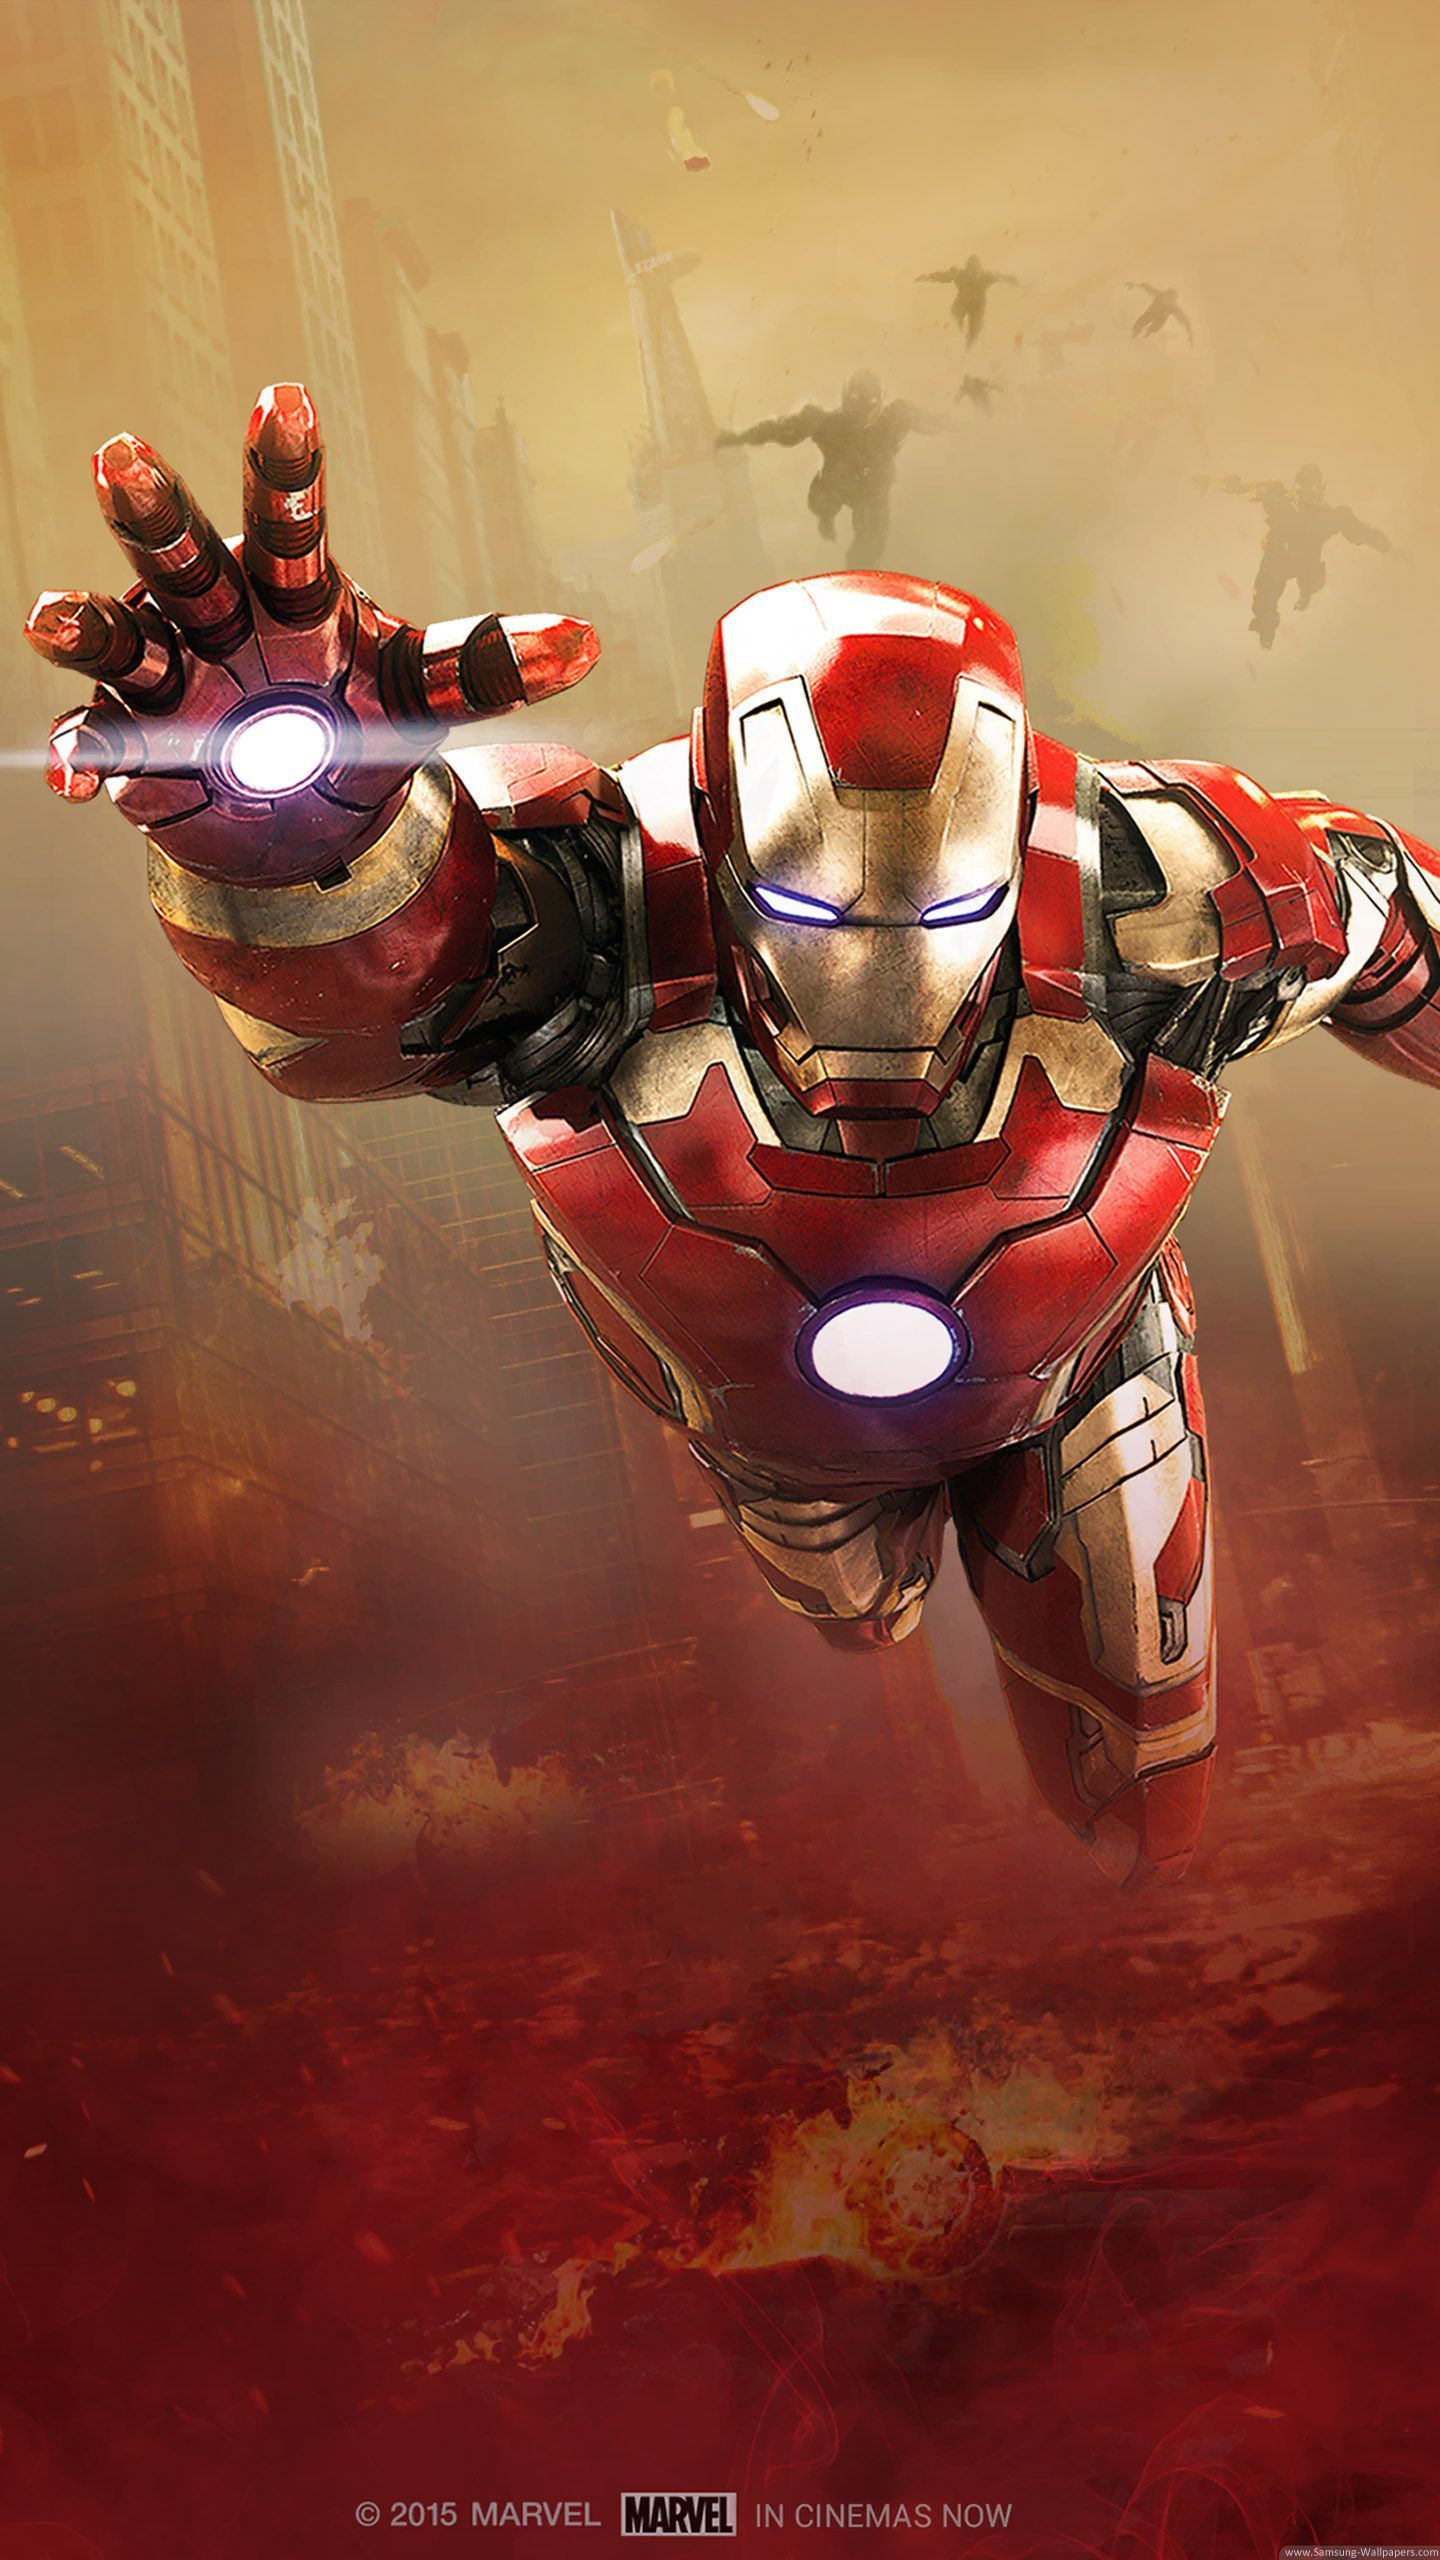 Download Best Iron Man Hd Wallpaper For Mobile Iron Man Hd Wallpaper Iron Man Wallpaper Iron Man Avengers